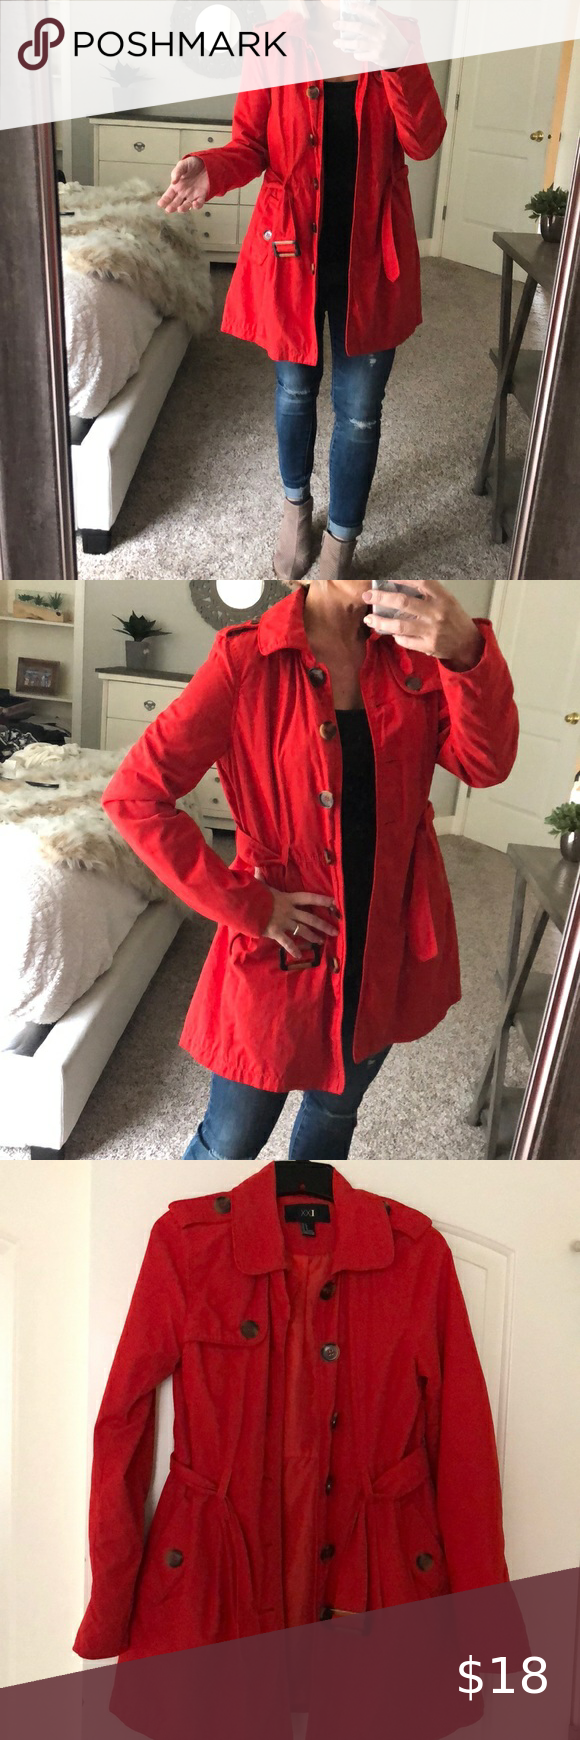 Bright red long jacket in 2020 Long jackets, Forever 21